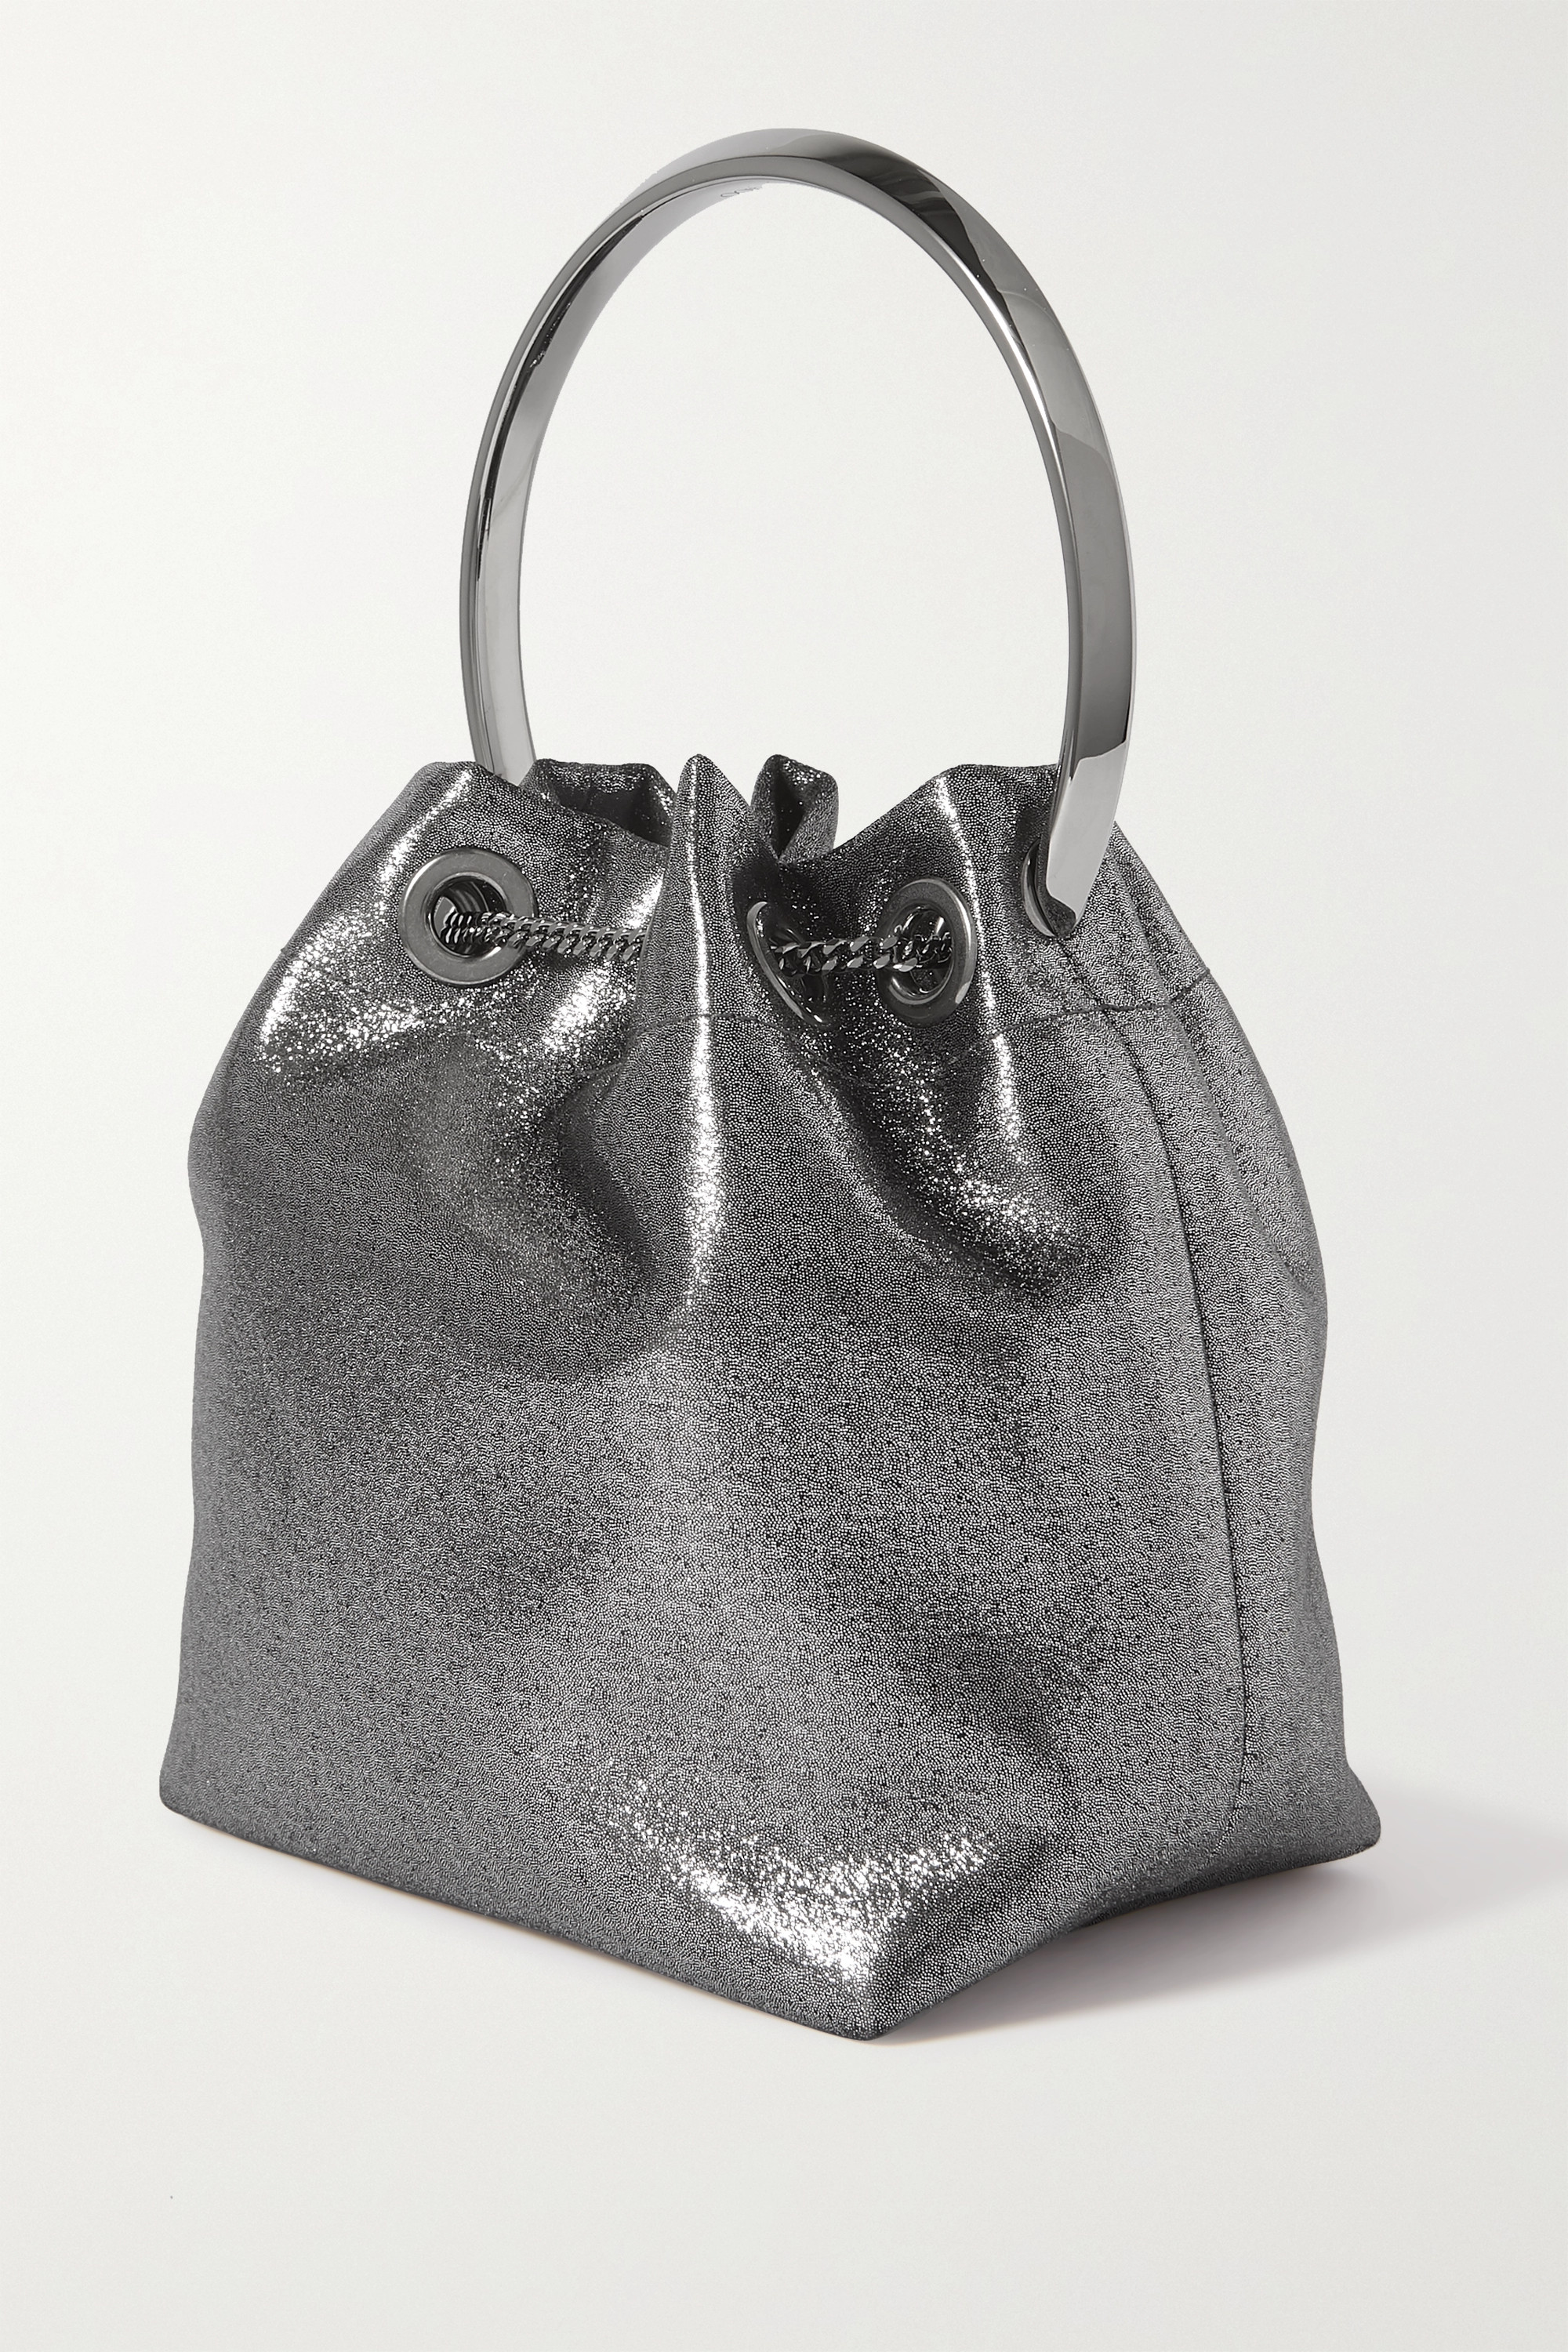 Jimmy Choo Bon Bon metallic satin bucket bag